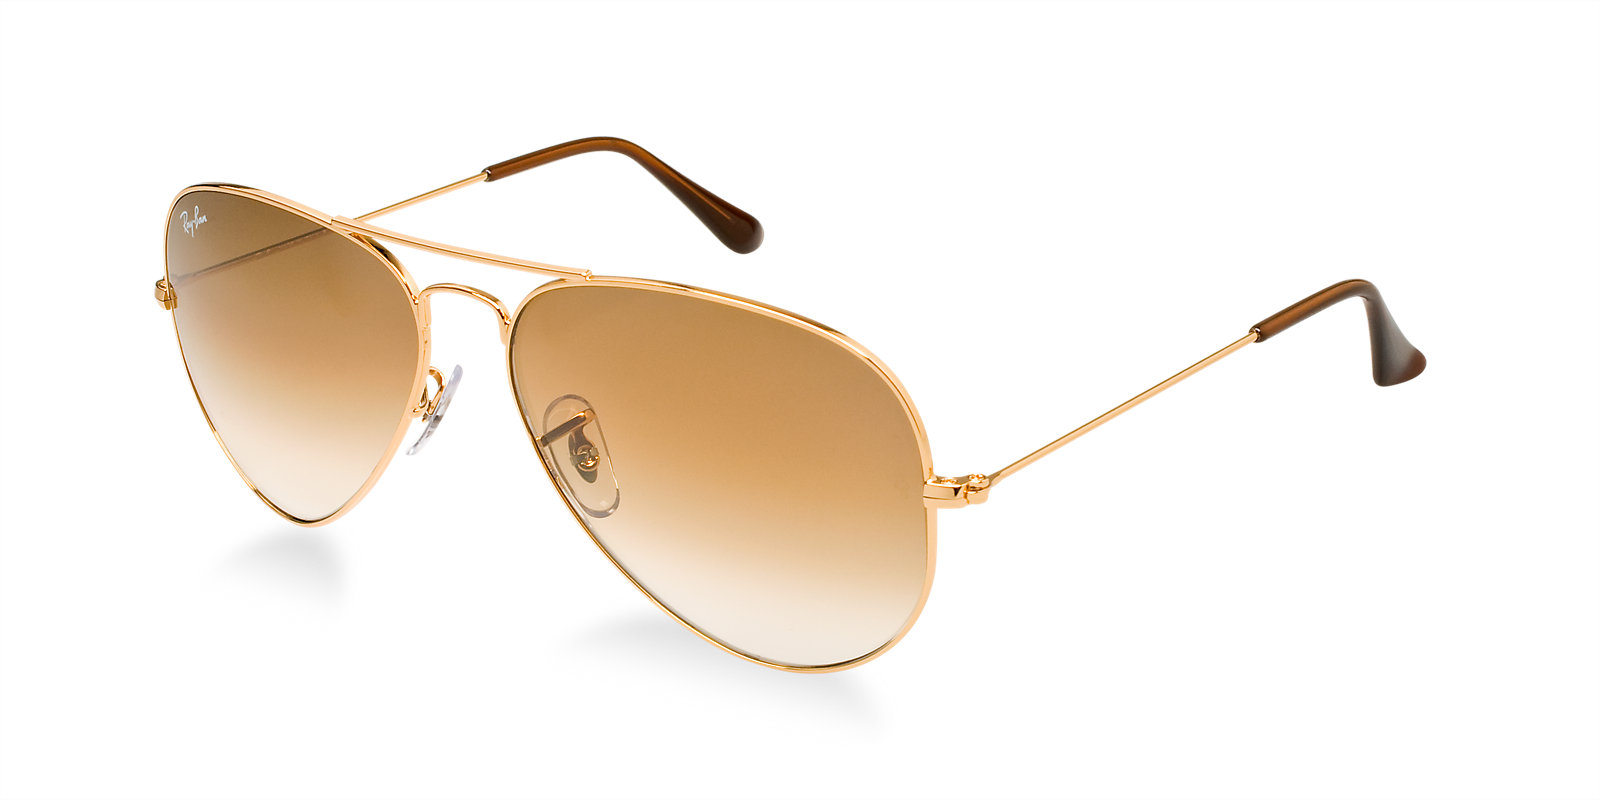 1f762032bd8 Previous  Next. Previous  Next. RAY-BAN RB3025 001 51 GOLD GRADIENT AVIATOR  SUNGLASSES